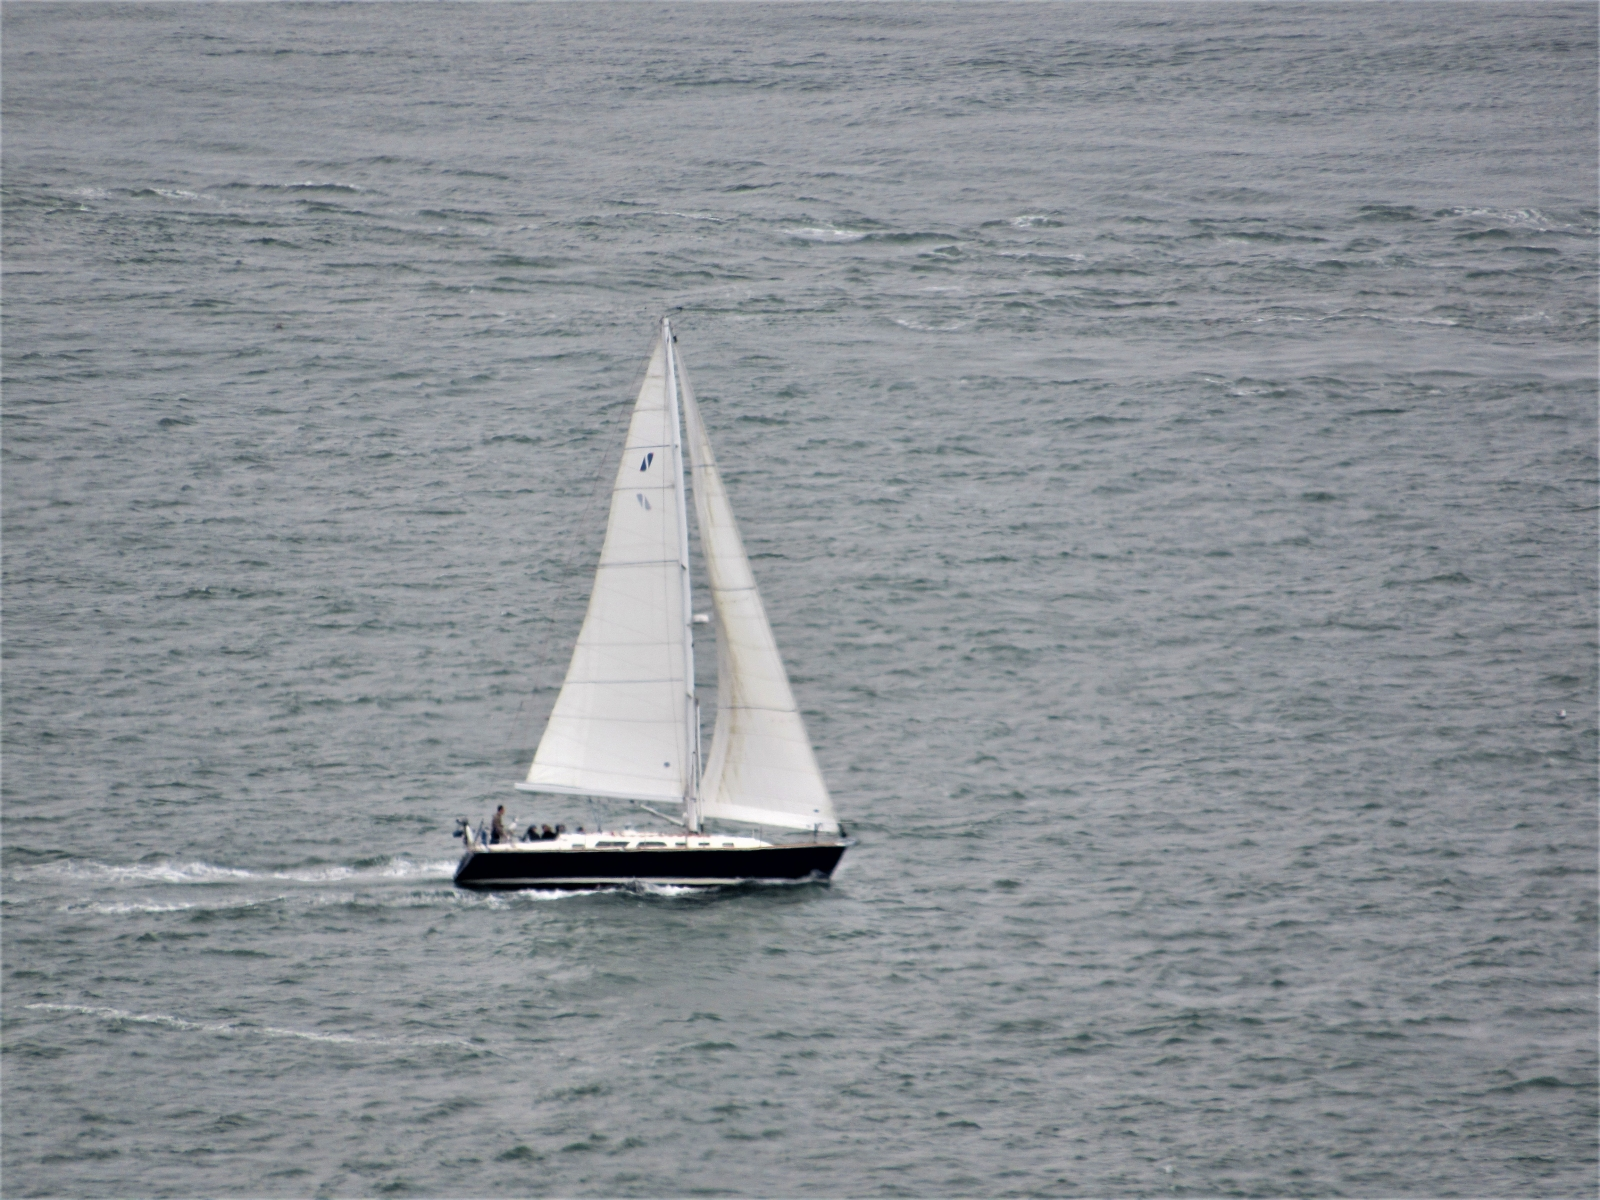 Sailboat-headed-out-to-sea